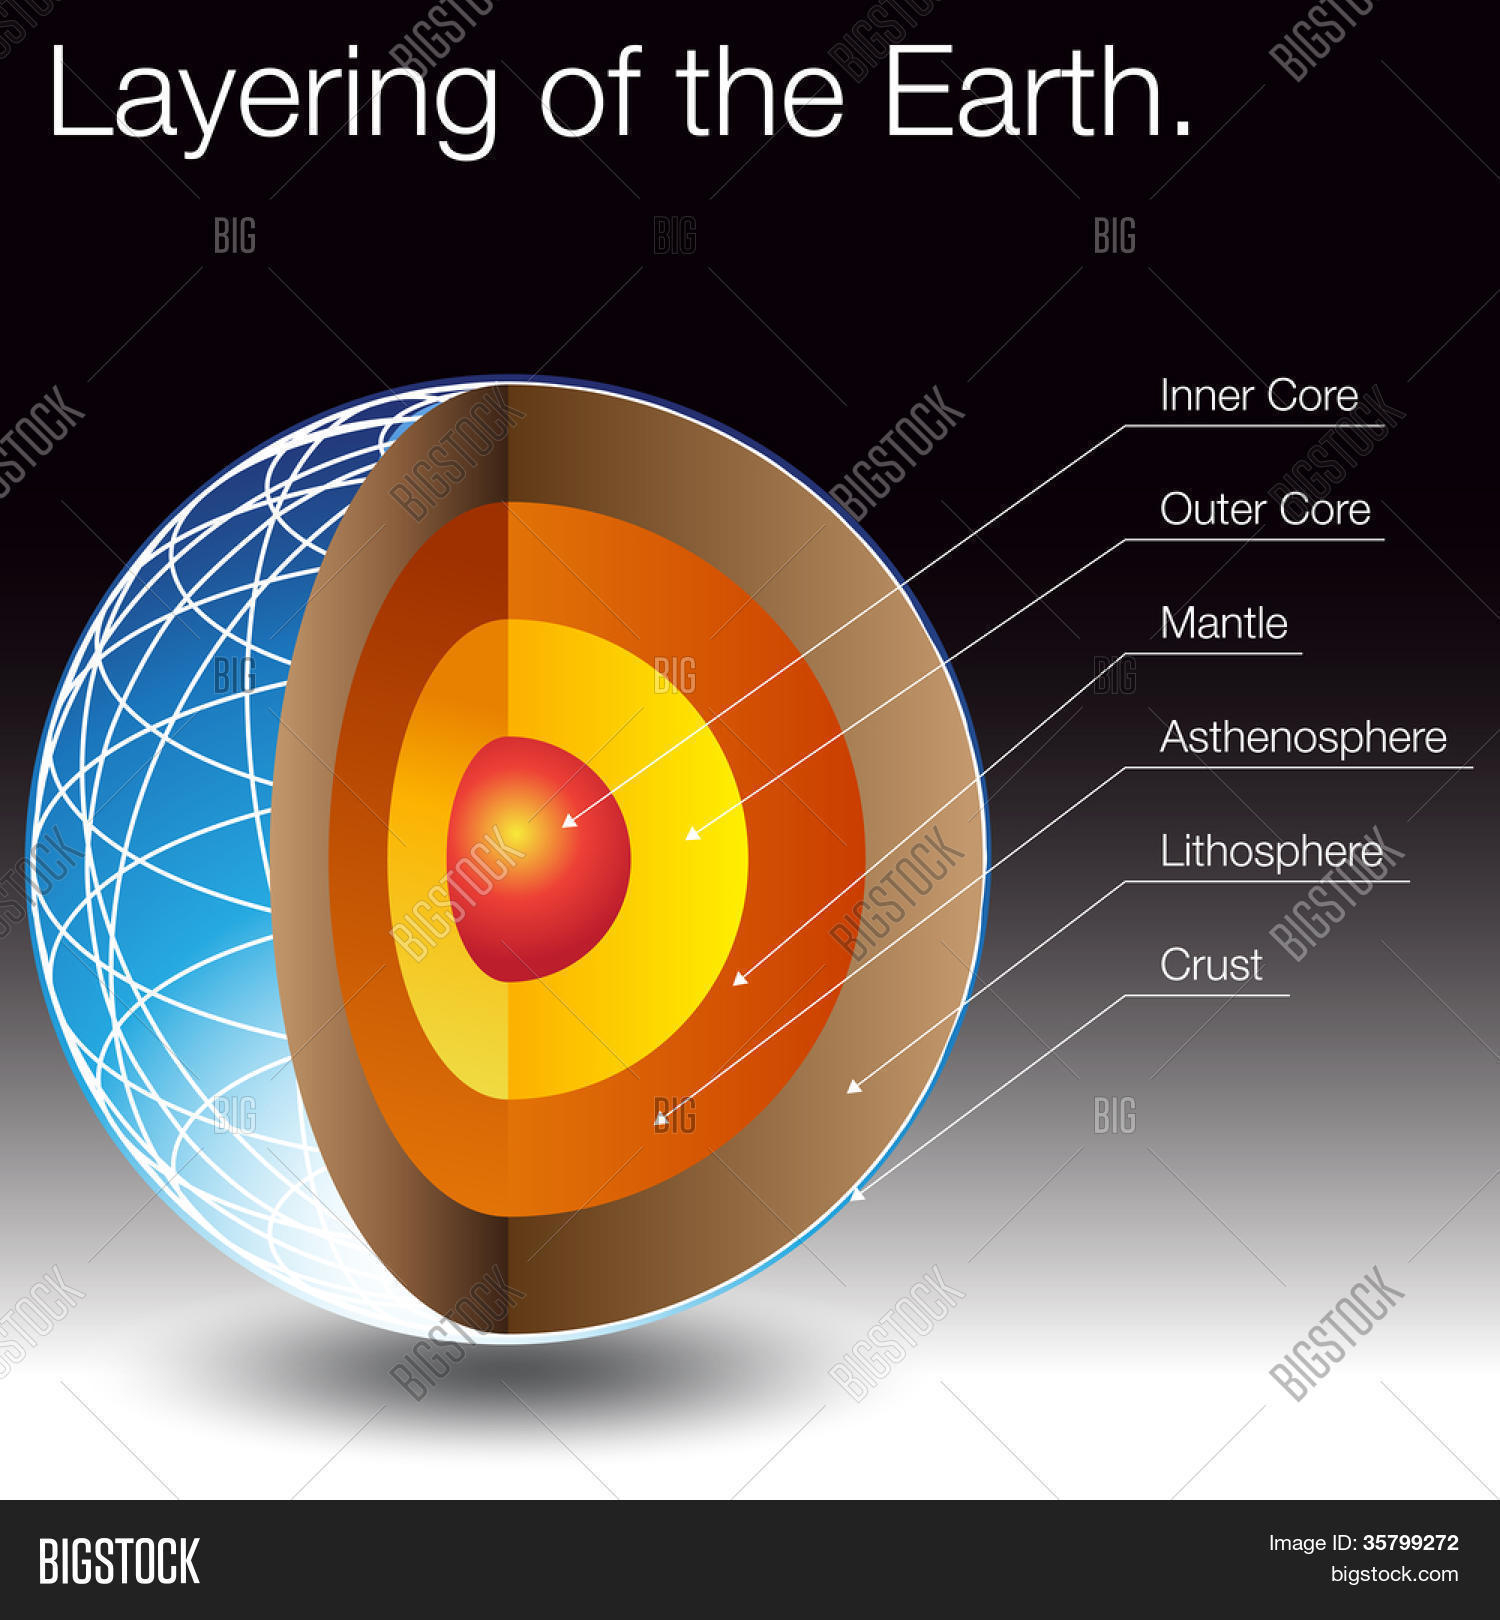 Diagram Of The Earth's Layers Layers Earth Research Paper Academic Writing Service August 2019